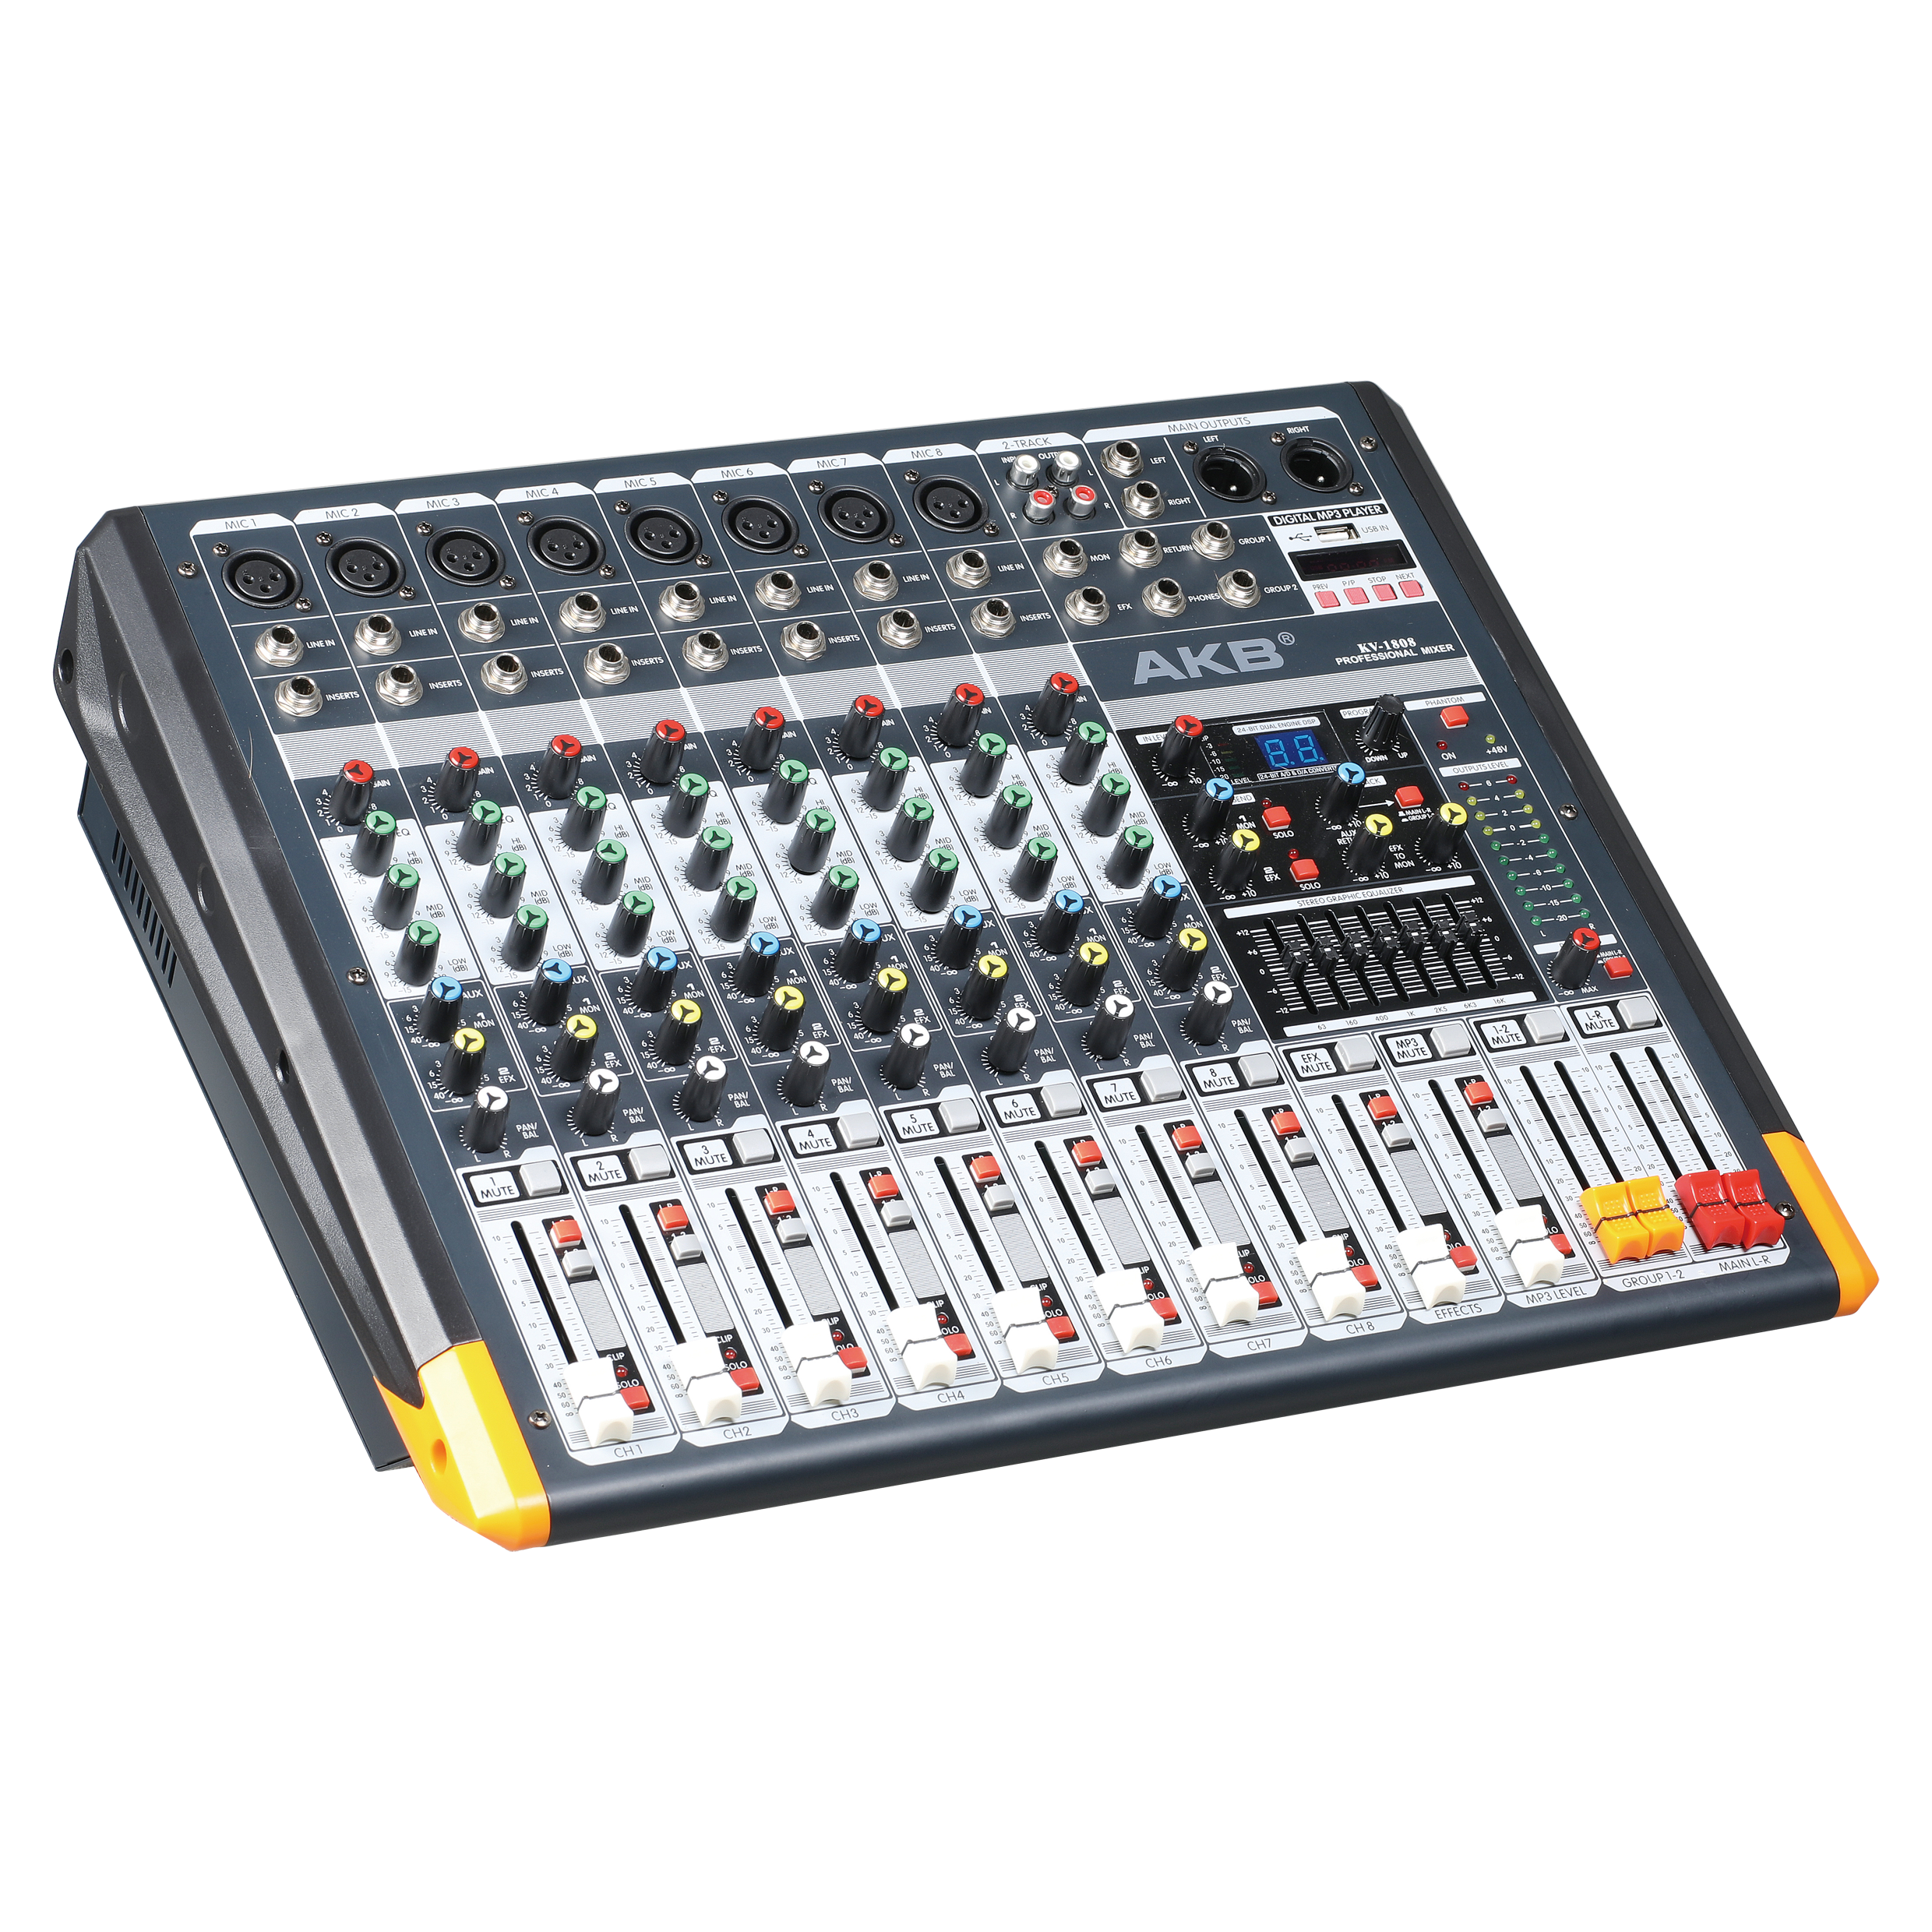 KV-1808 enping professional power mixer